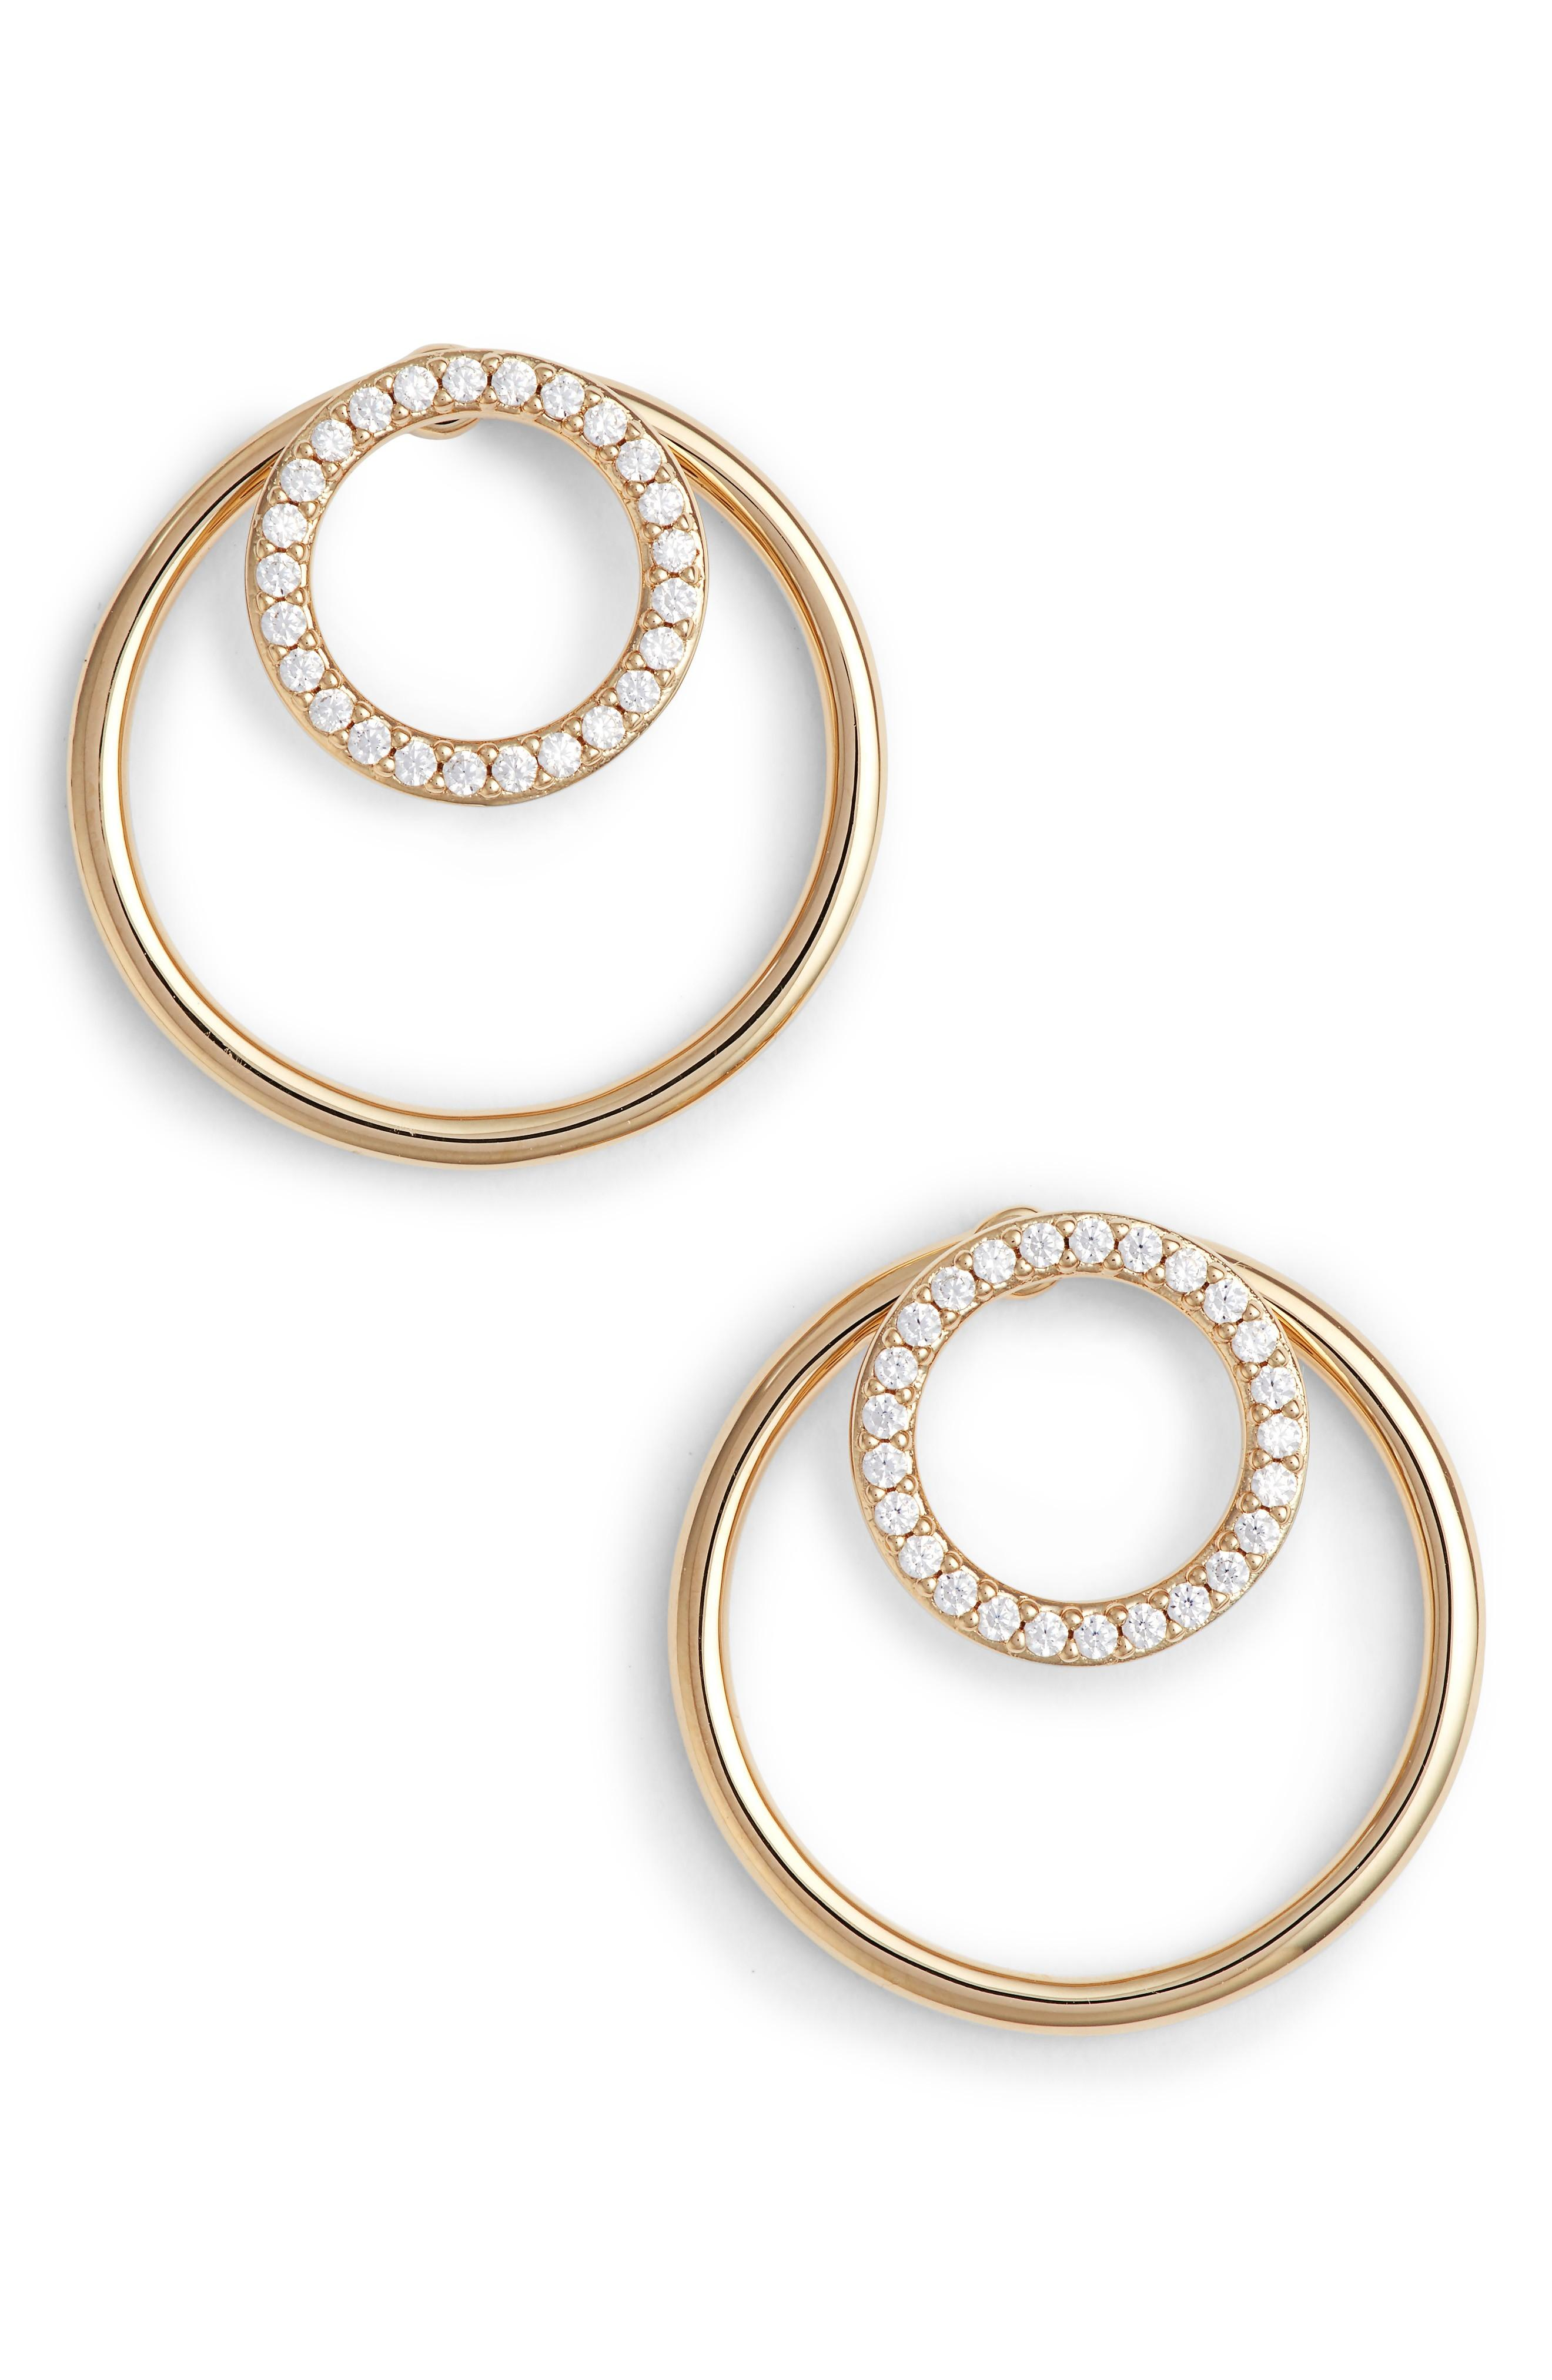 Nadri Pave Double Circle Earrings In Gold/ Clear